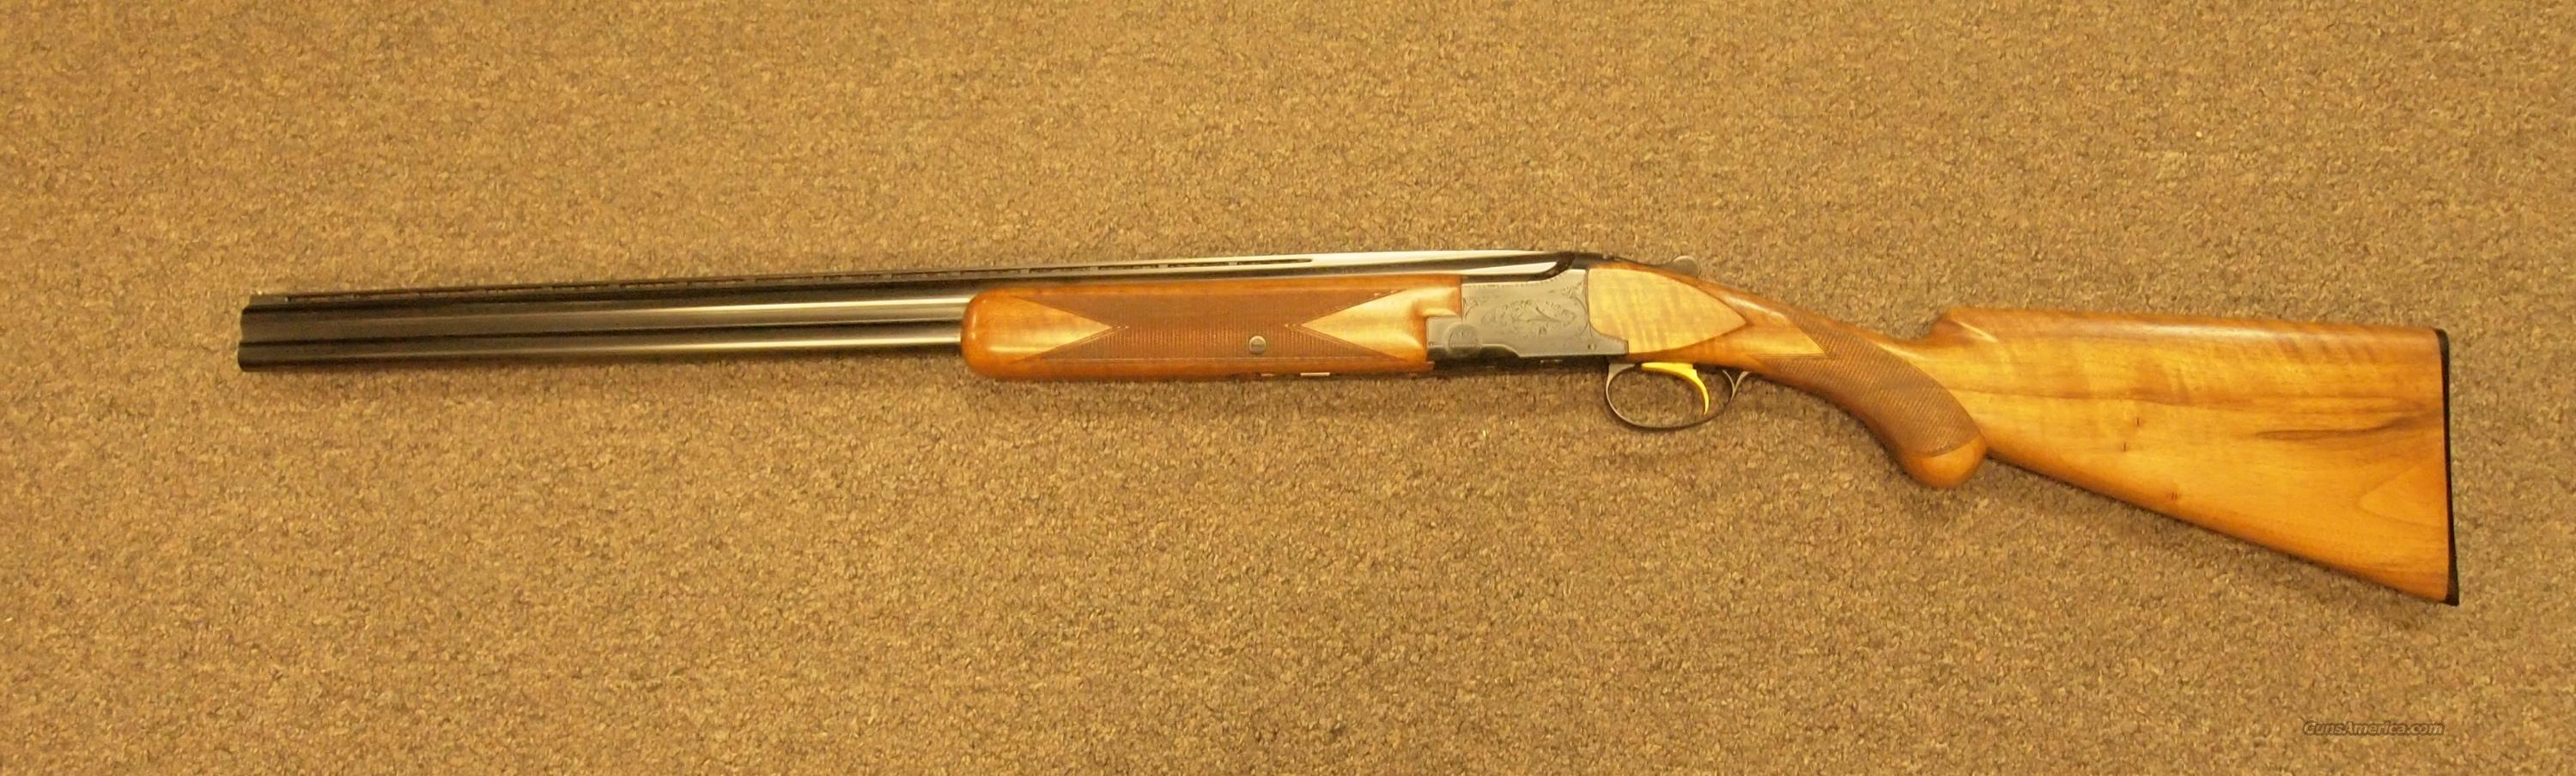 Browning Superposed 20 ga  Guns > Shotguns > Browning Shotguns > Over Unders > Belgian Manufacture